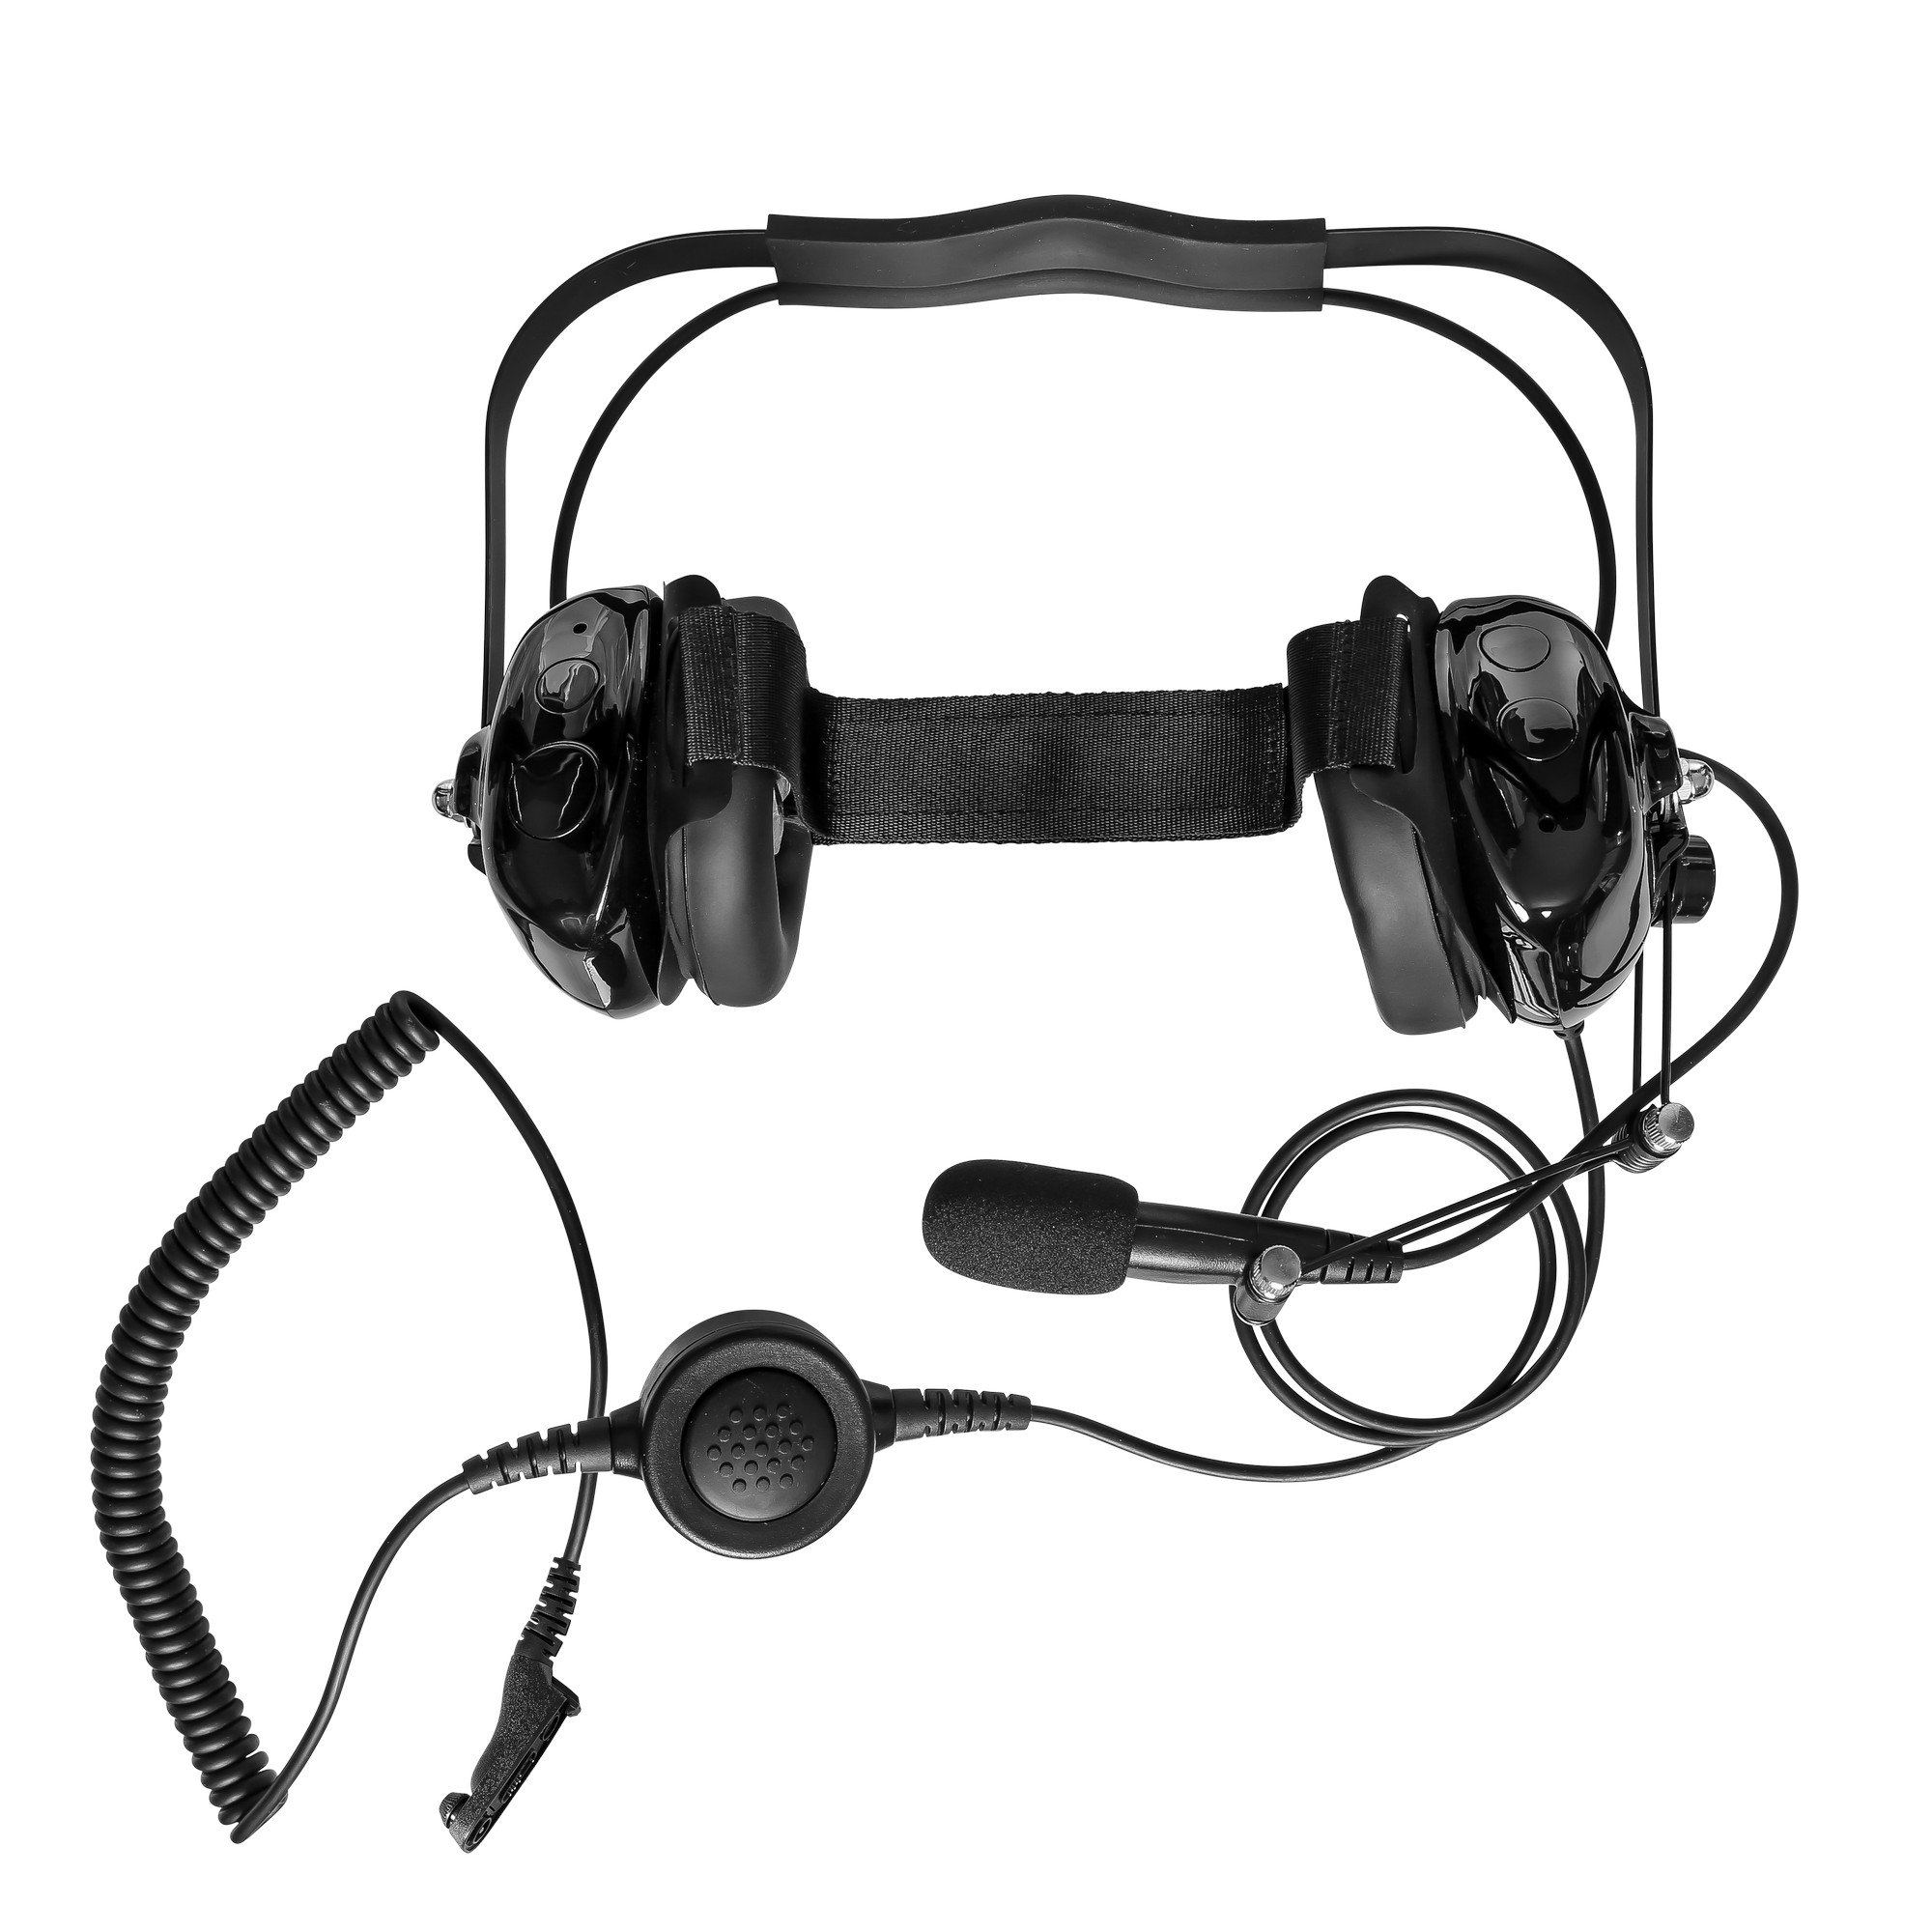 Maxtop AHDH0032-BK-M9 Two Way Radio Noise Cancelling Headset for Motorola MTP850 MTP830 XPR-7380 XPR-7550 XPR-7580 by MAXTOP (Image #1)